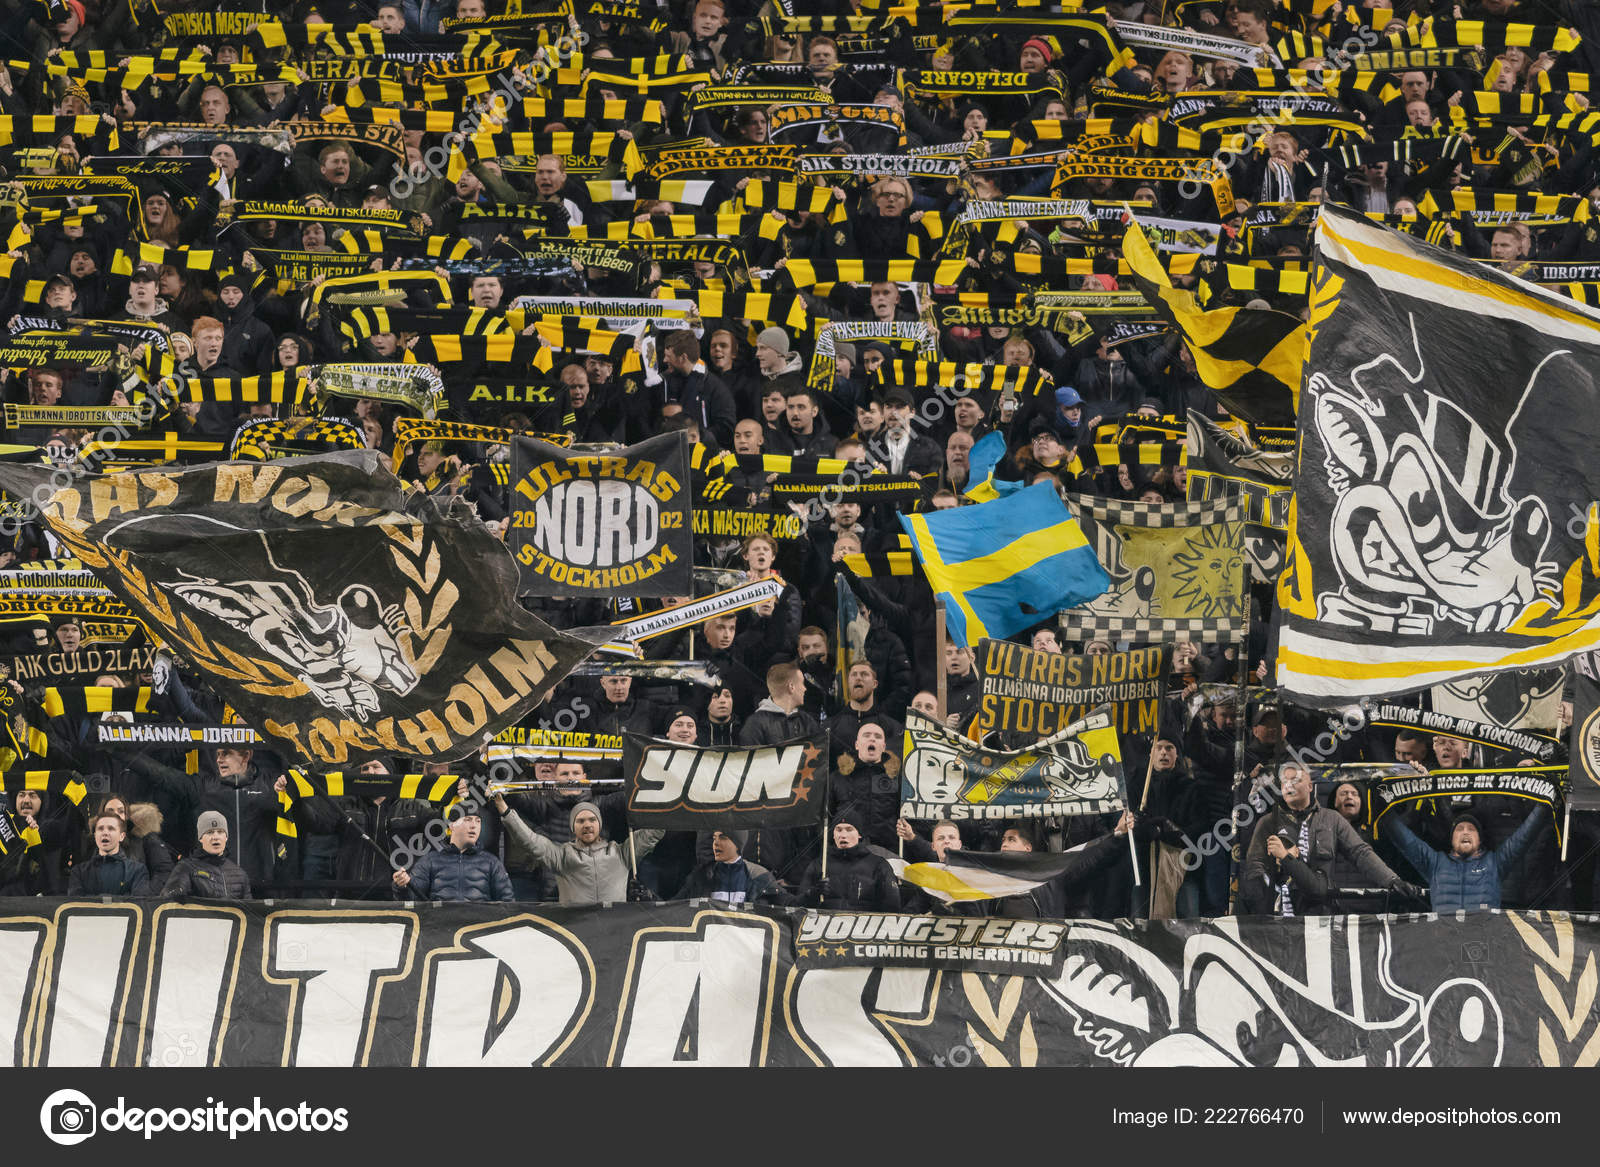 Solna Sweden Oct 2018 Aik Malmo Friends Arena Stockholm Final Stock Editorial Photo C Steho 222766470 December 31 17:15 captain sensible who are the best fpl captain options for gameweek 17? https depositphotos com 222766470 stock photo solna sweden oct 2018 aik html